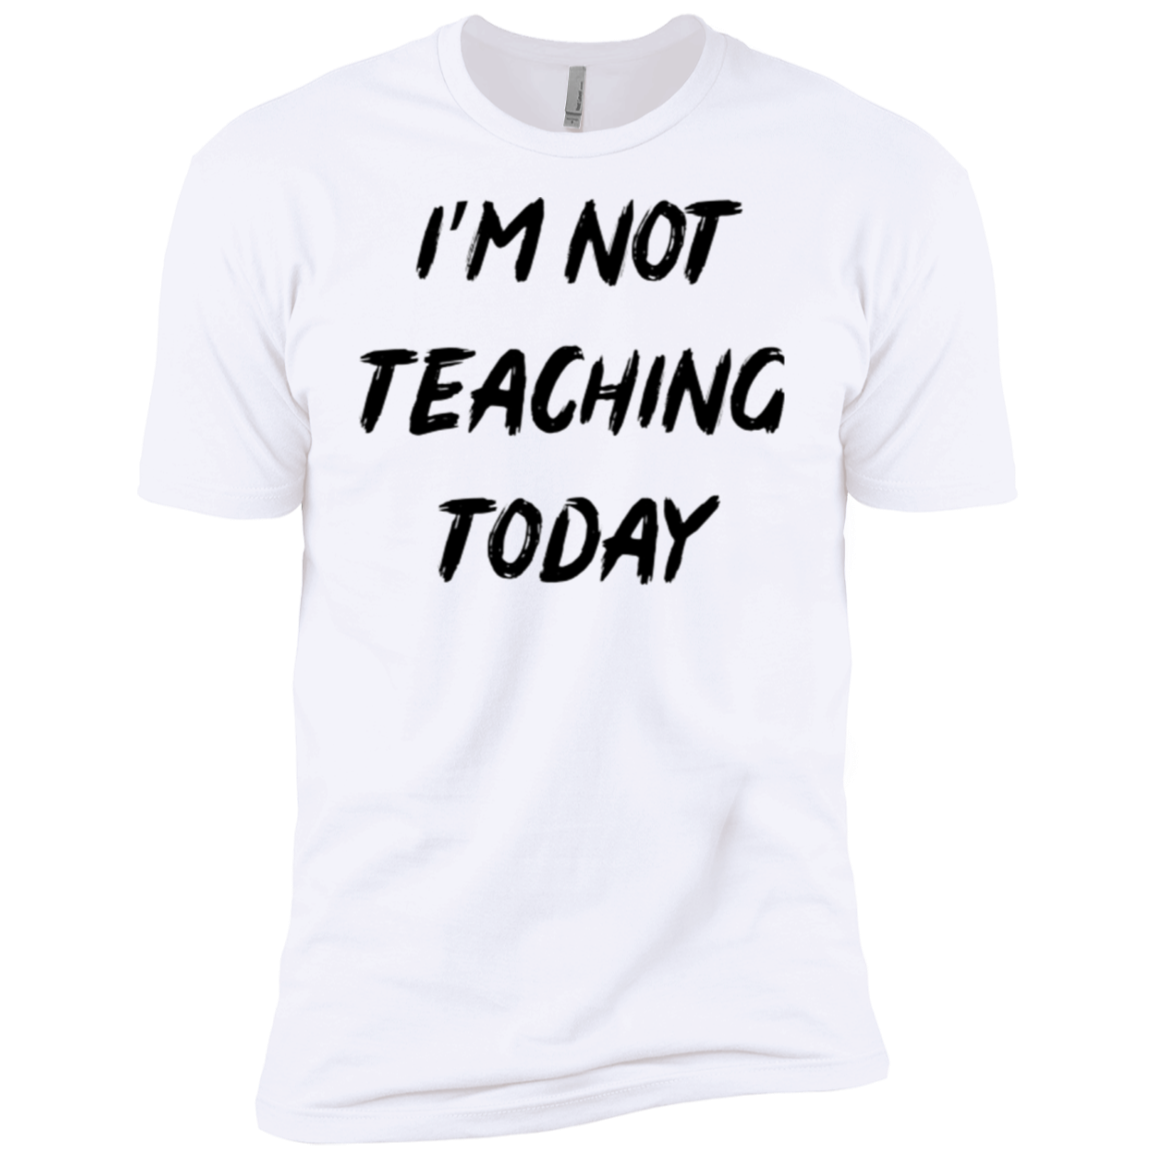 I'm Not Teaching Today Men's Classic Tee - Trendy Tees